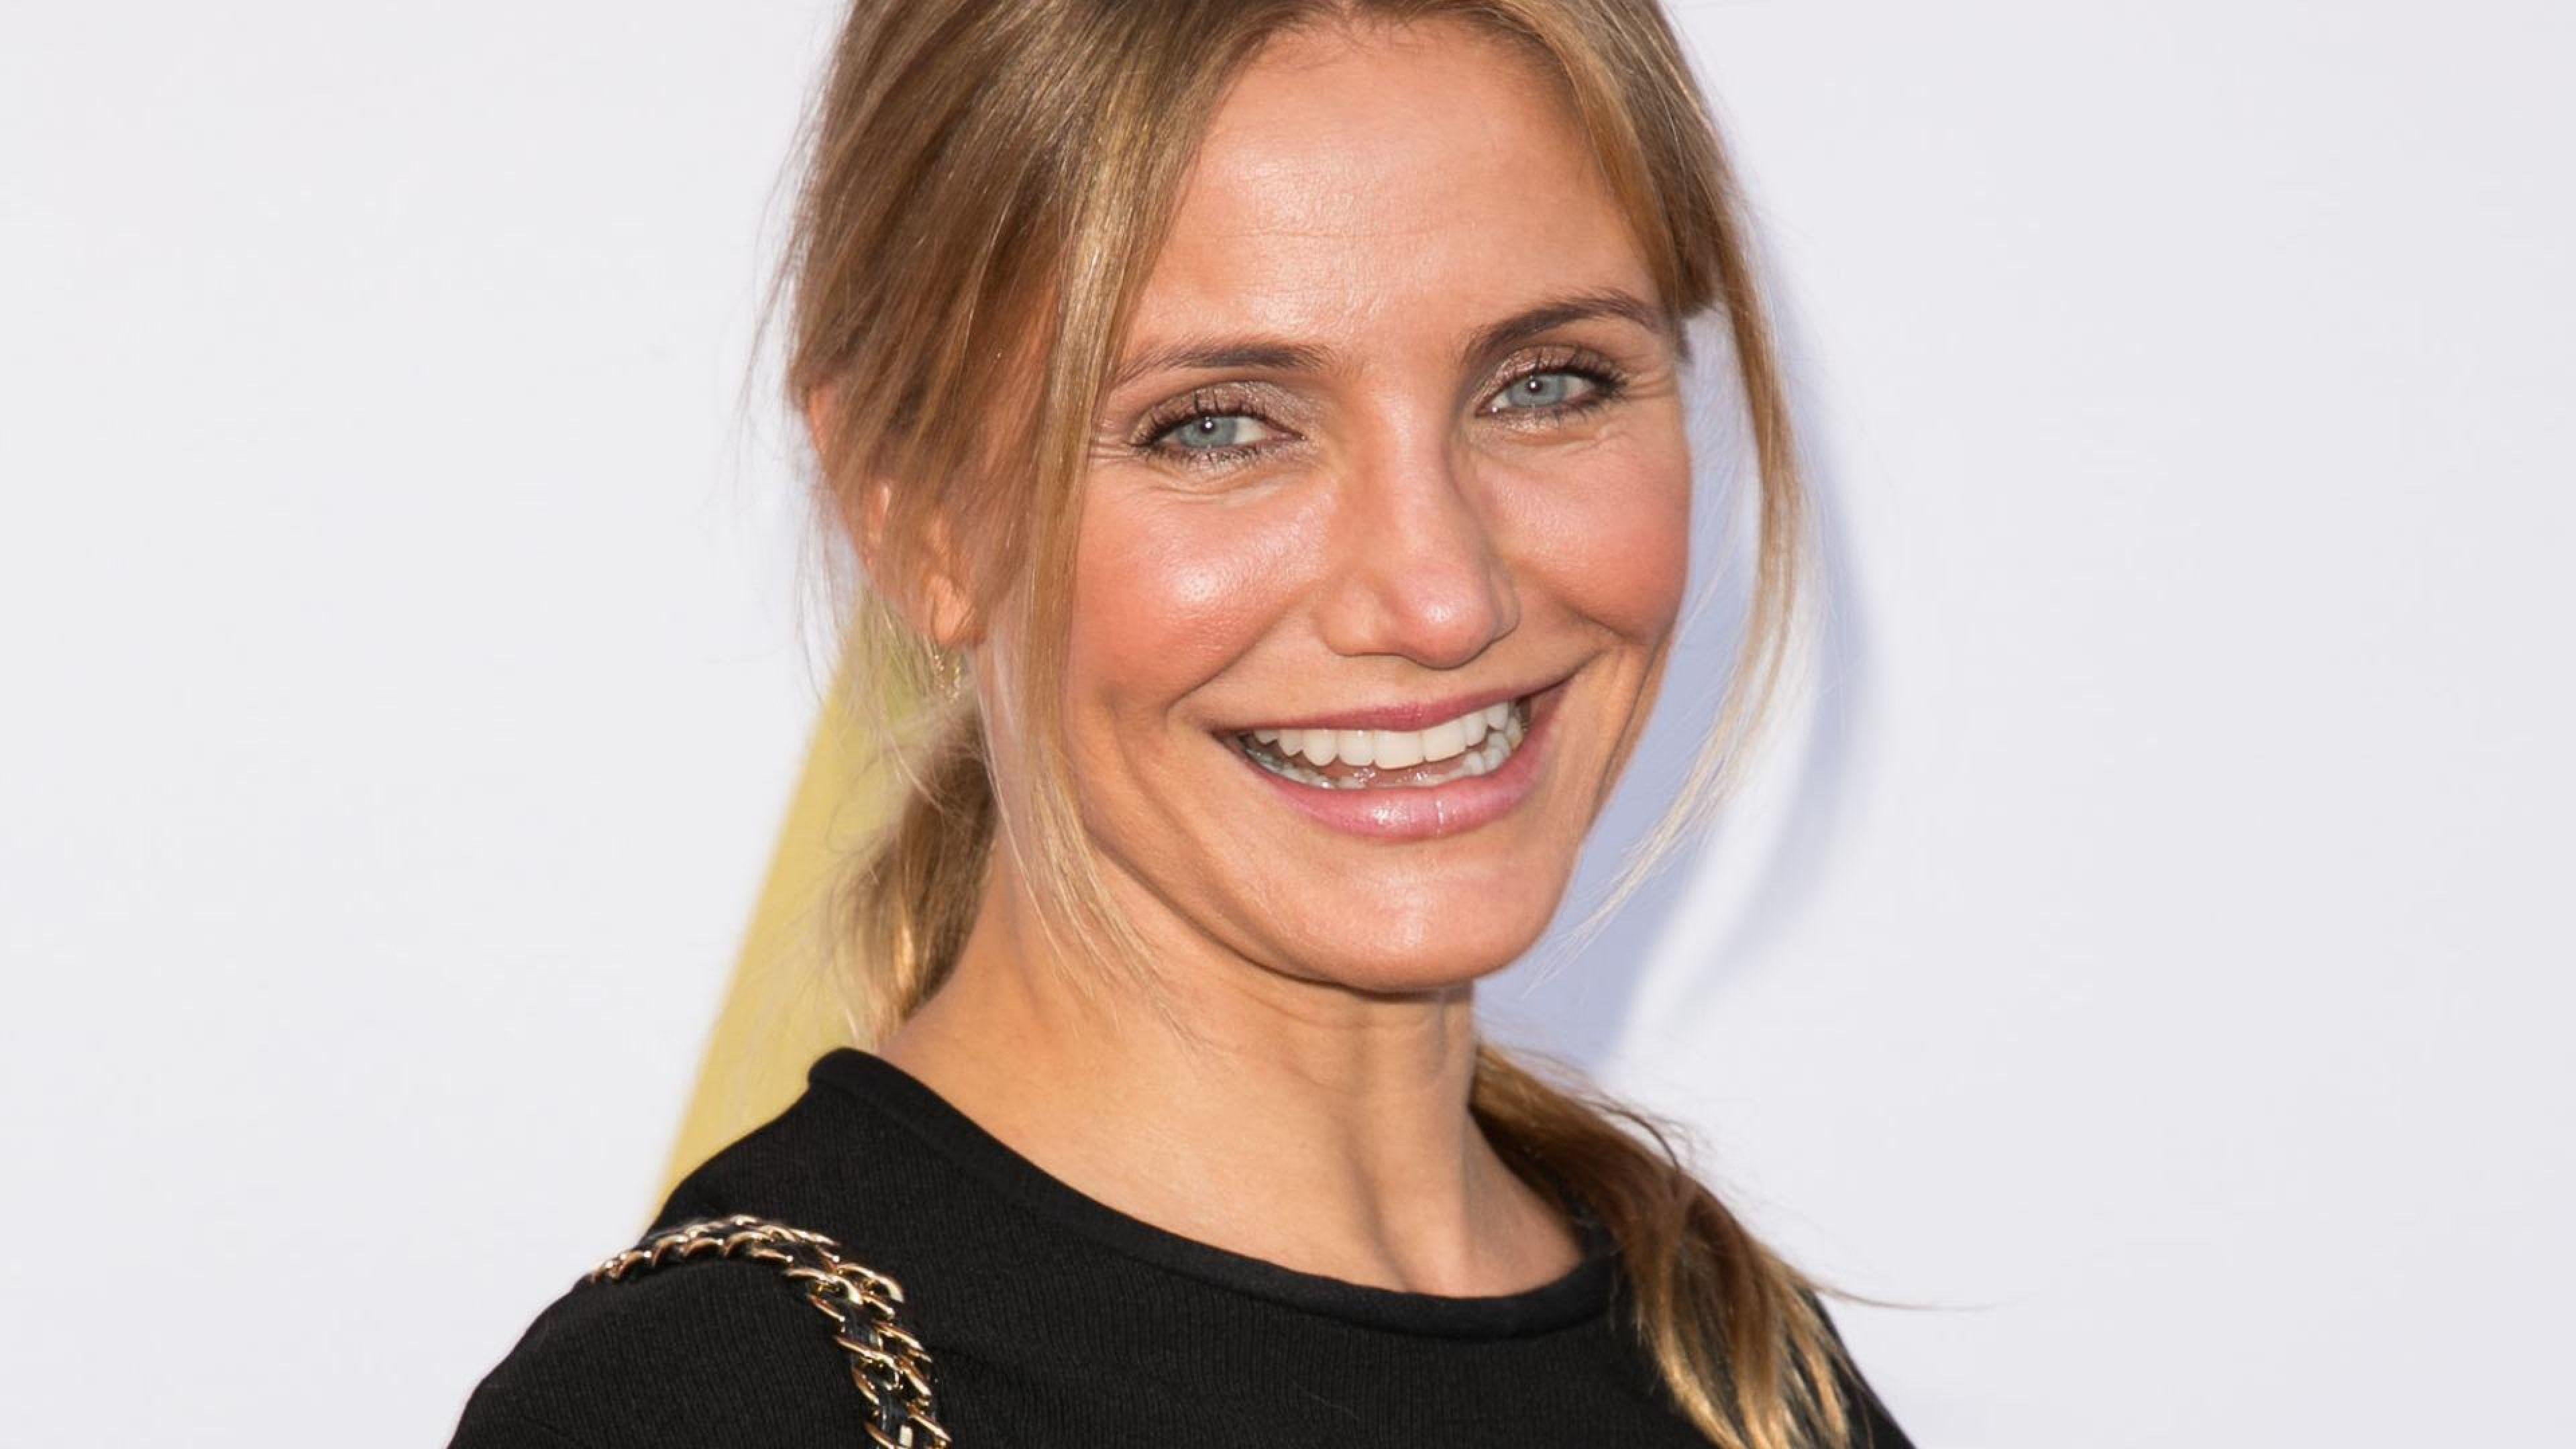 Cameron Diaz Celebrity Widescreen Wallpaper 55477 3840x2160 px ...